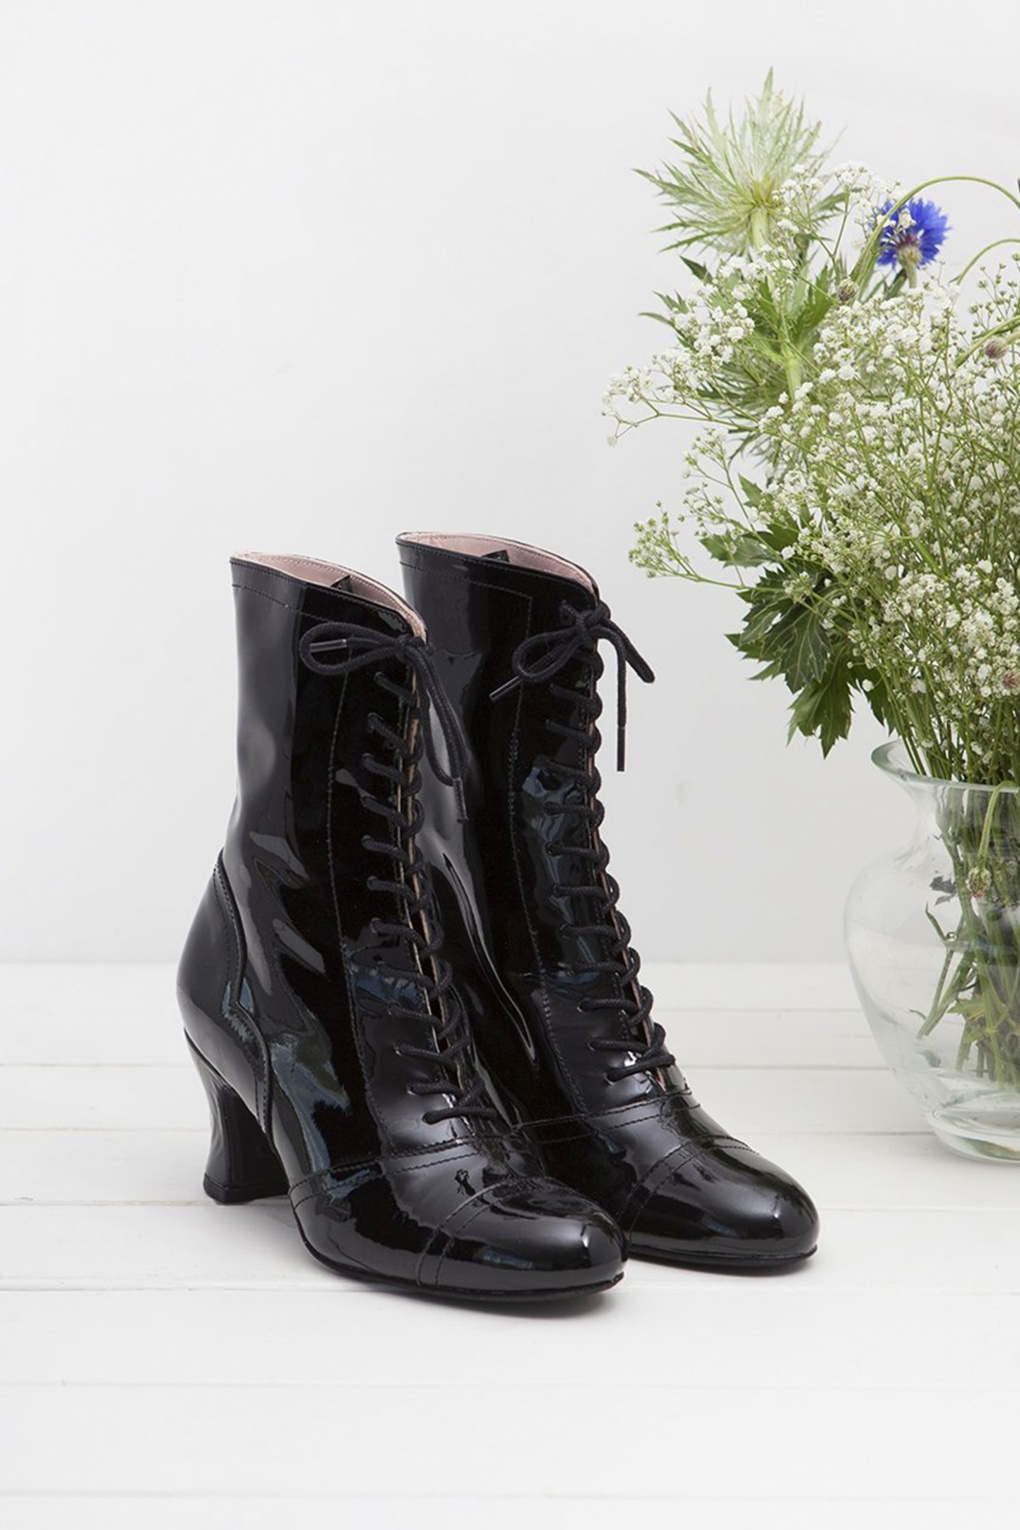 Steampunk Boots & Shoes, Heels & Flats 40s Frida Lace Up Booties in Patent Black £174.38 AT vintagedancer.com